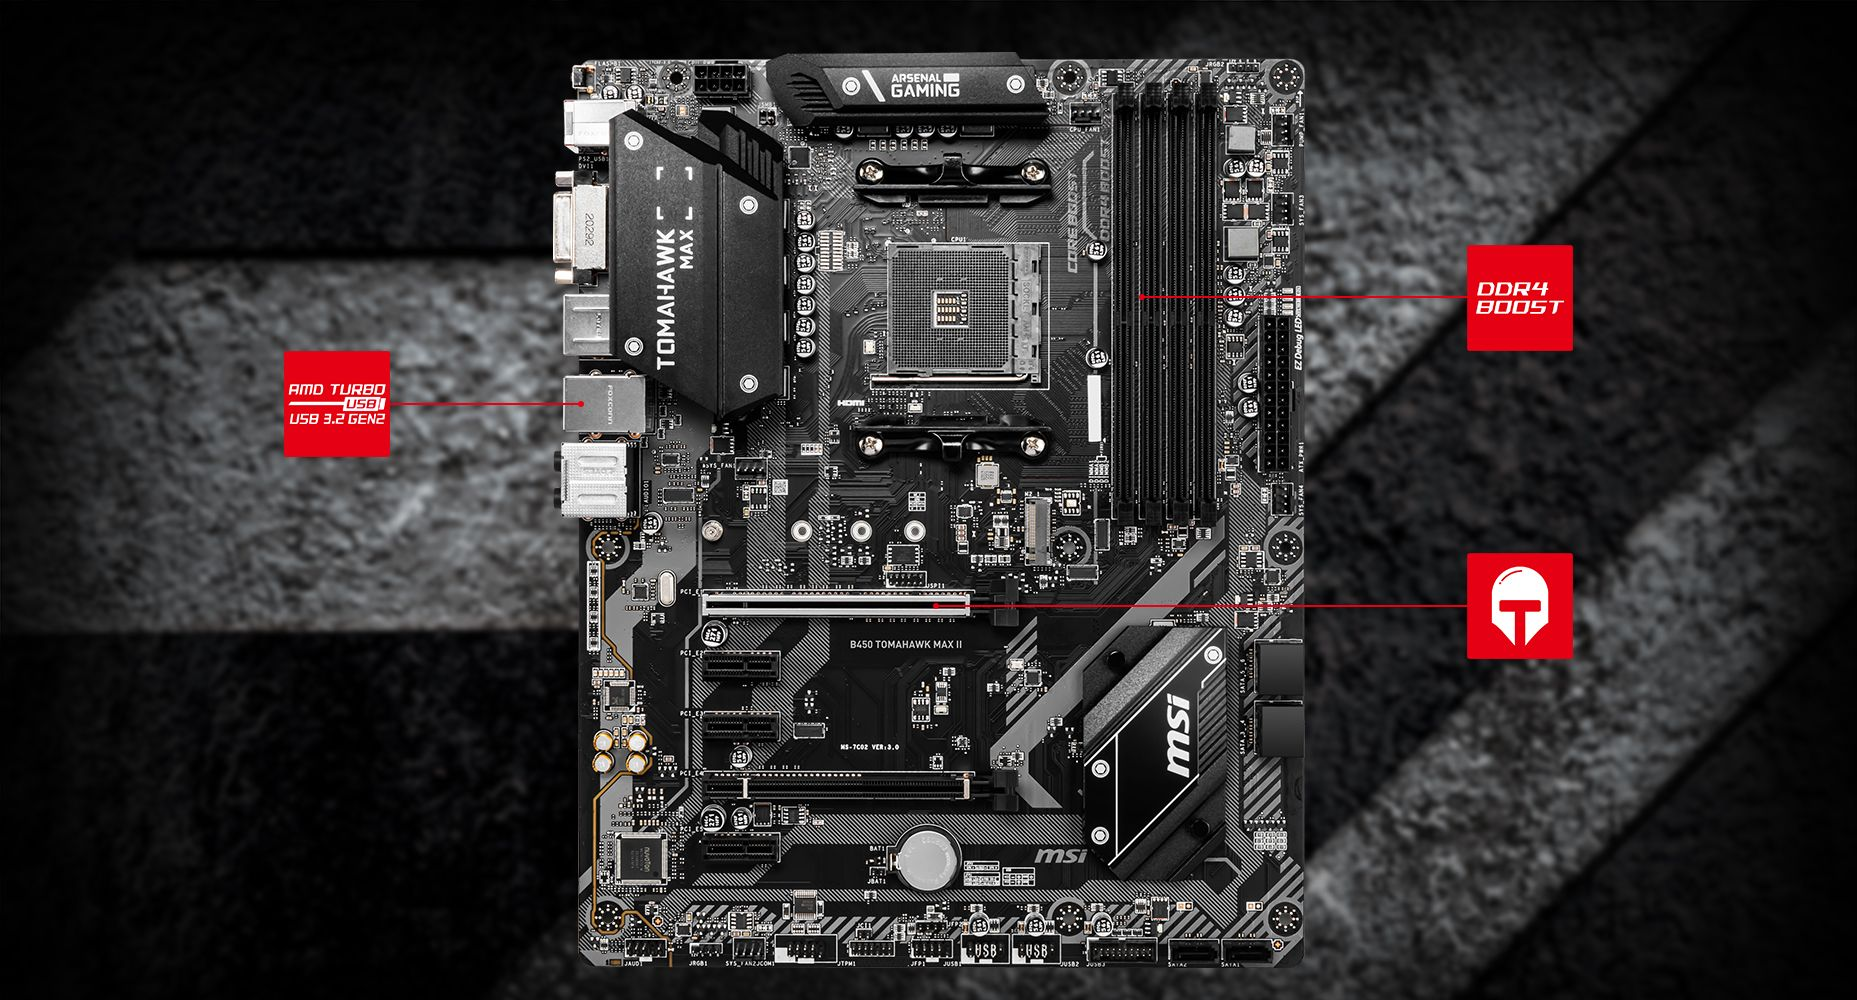 MSI B450 TOMAHAWK MAX II THERMAL overview